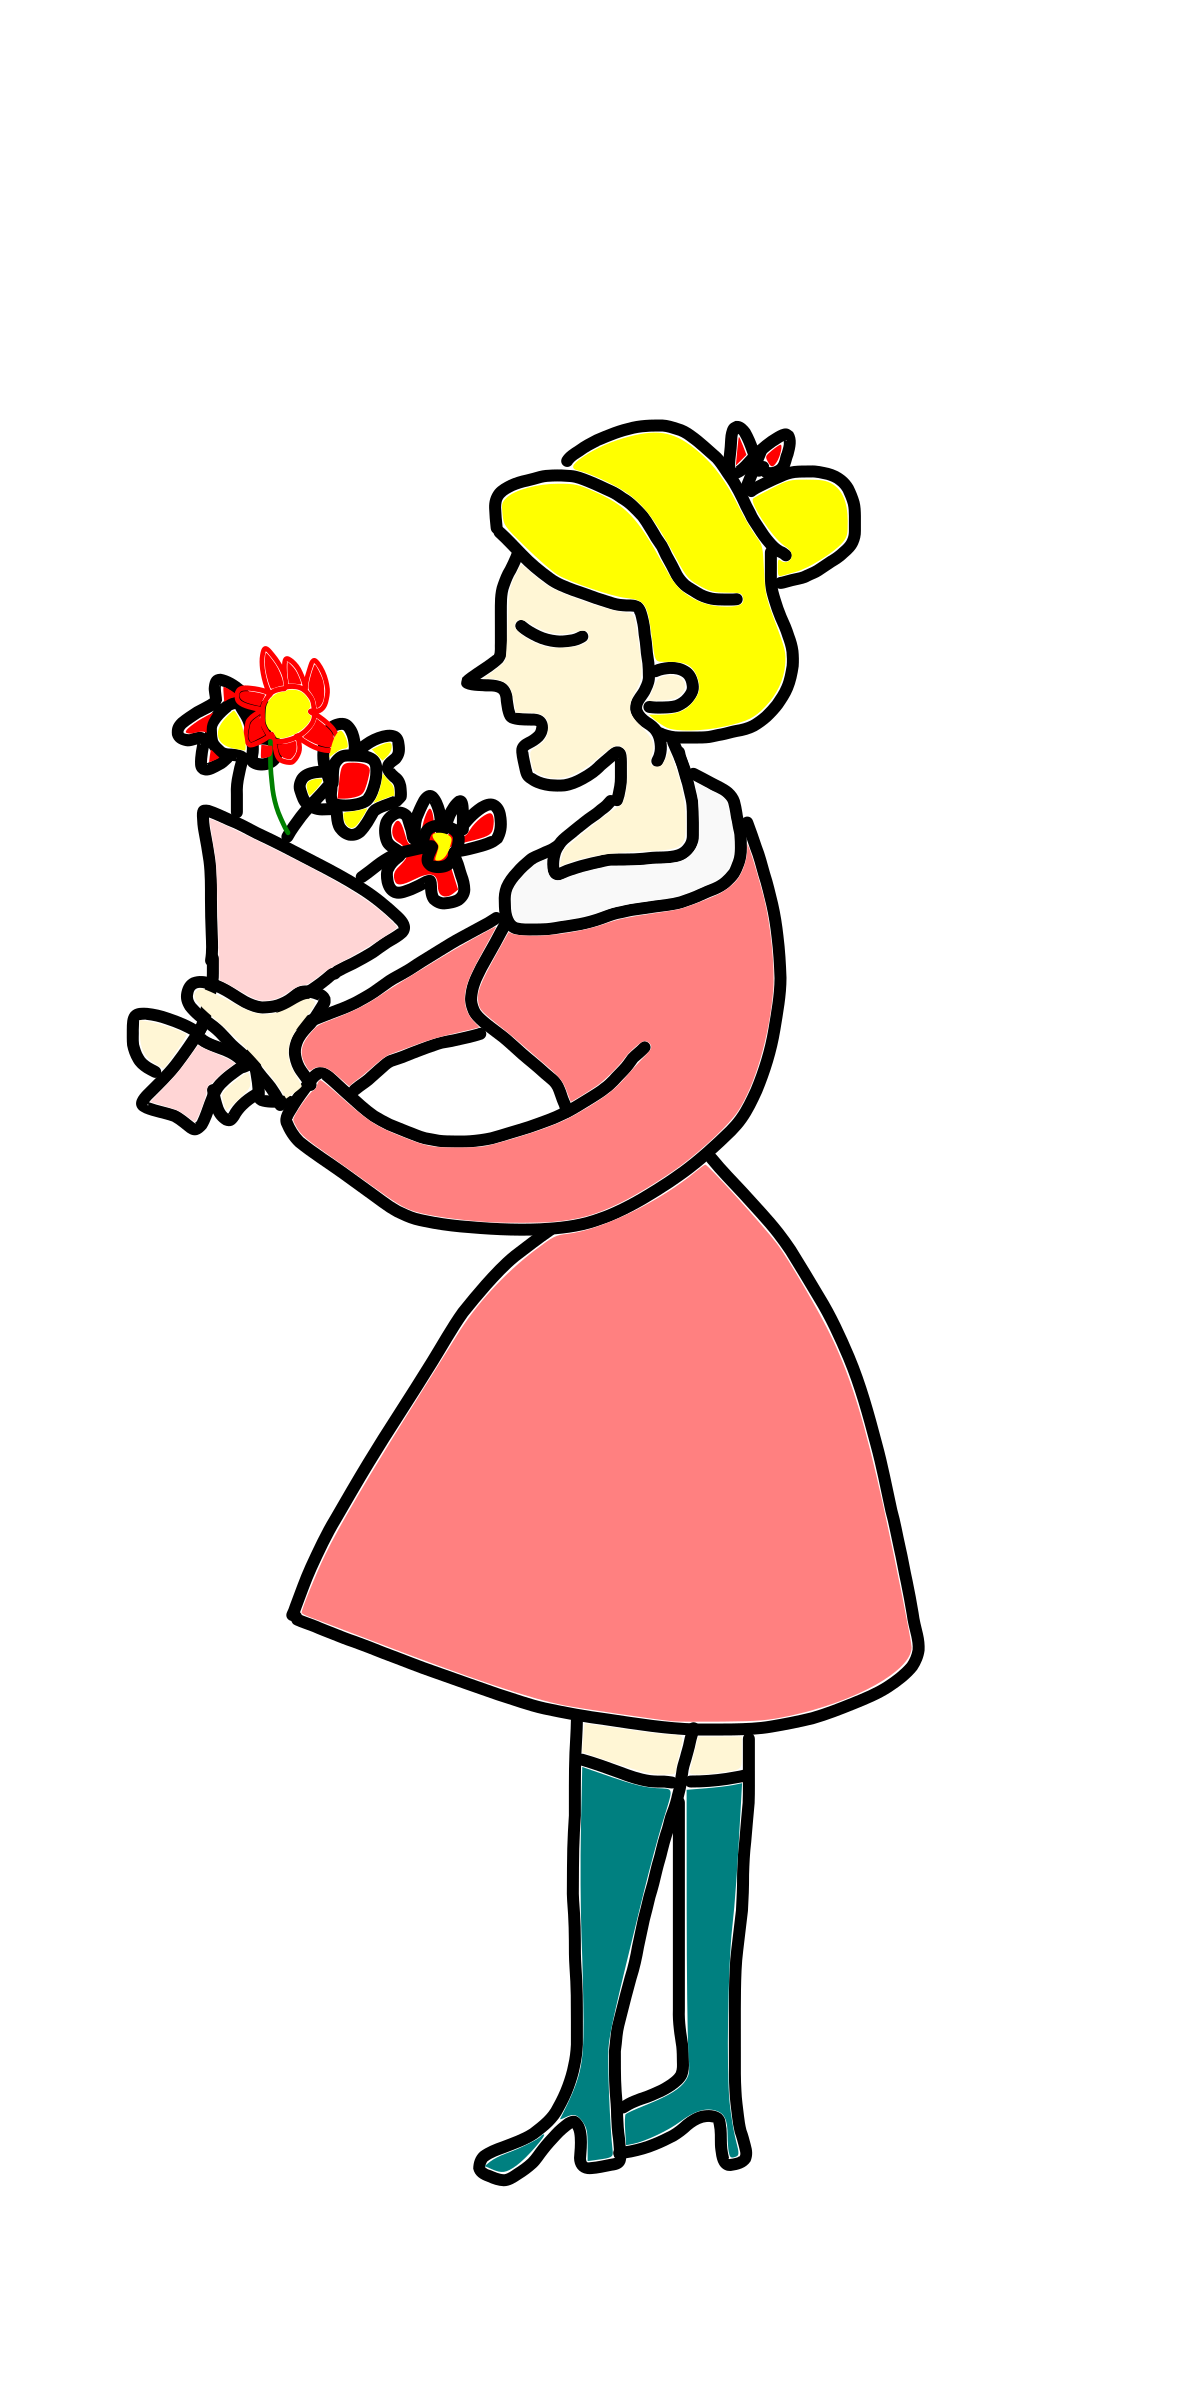 Smell clipart smell the rose. Free cliparts download clip